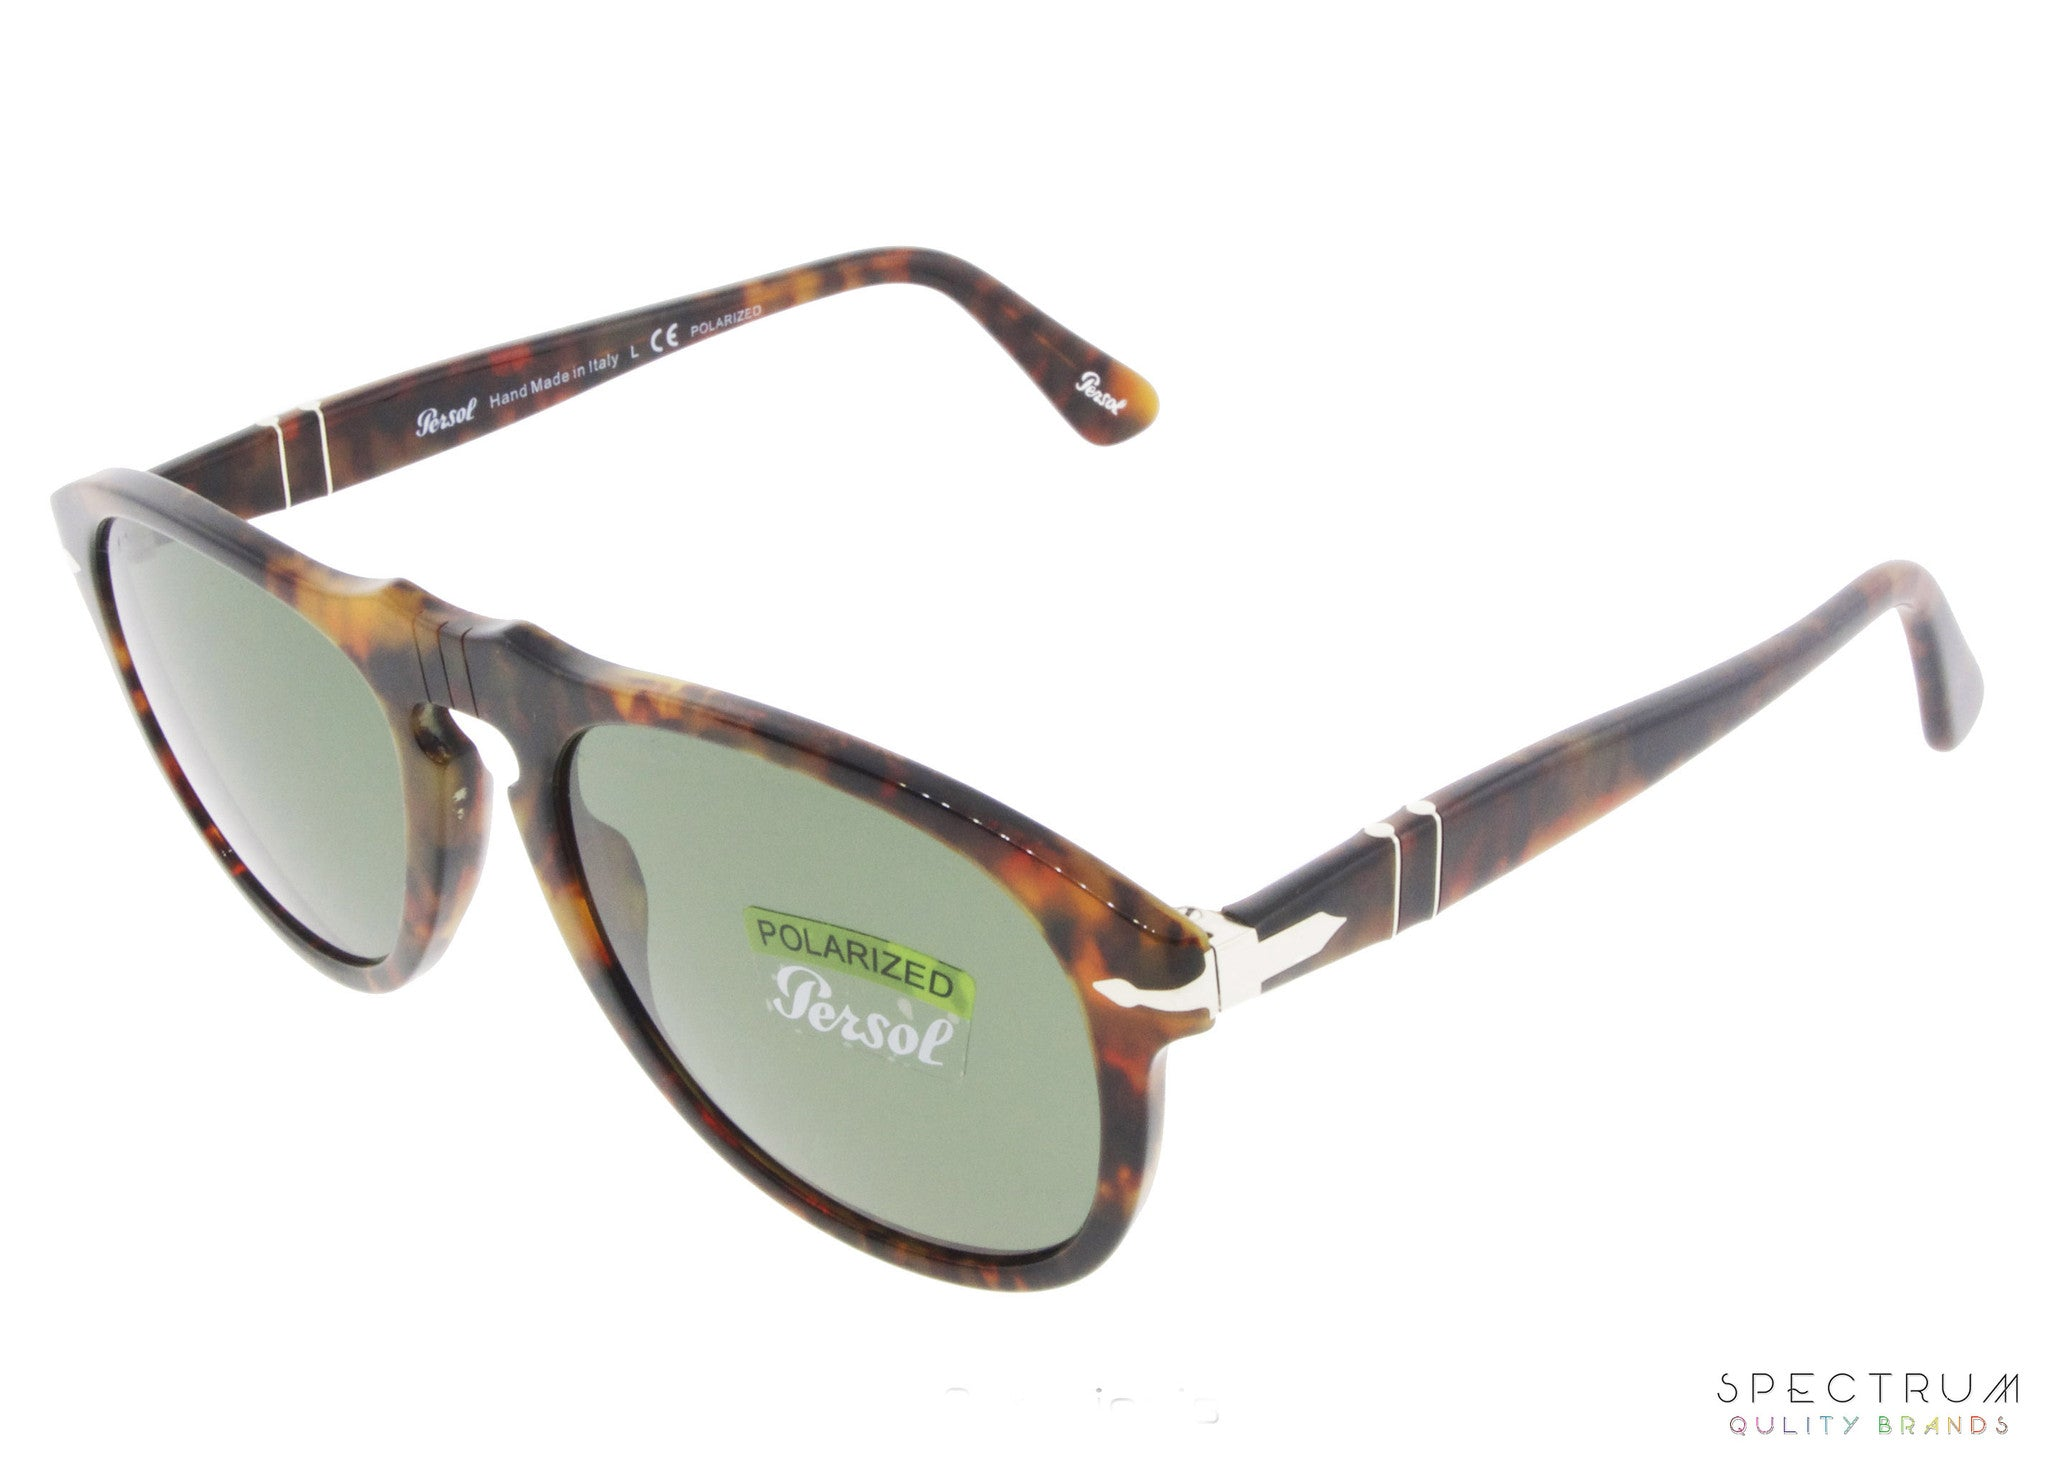 9bee3ec6db ... Persol Sunglasses 0649 108 58 Caffe with Polarized Green Lenses Size 52  ...